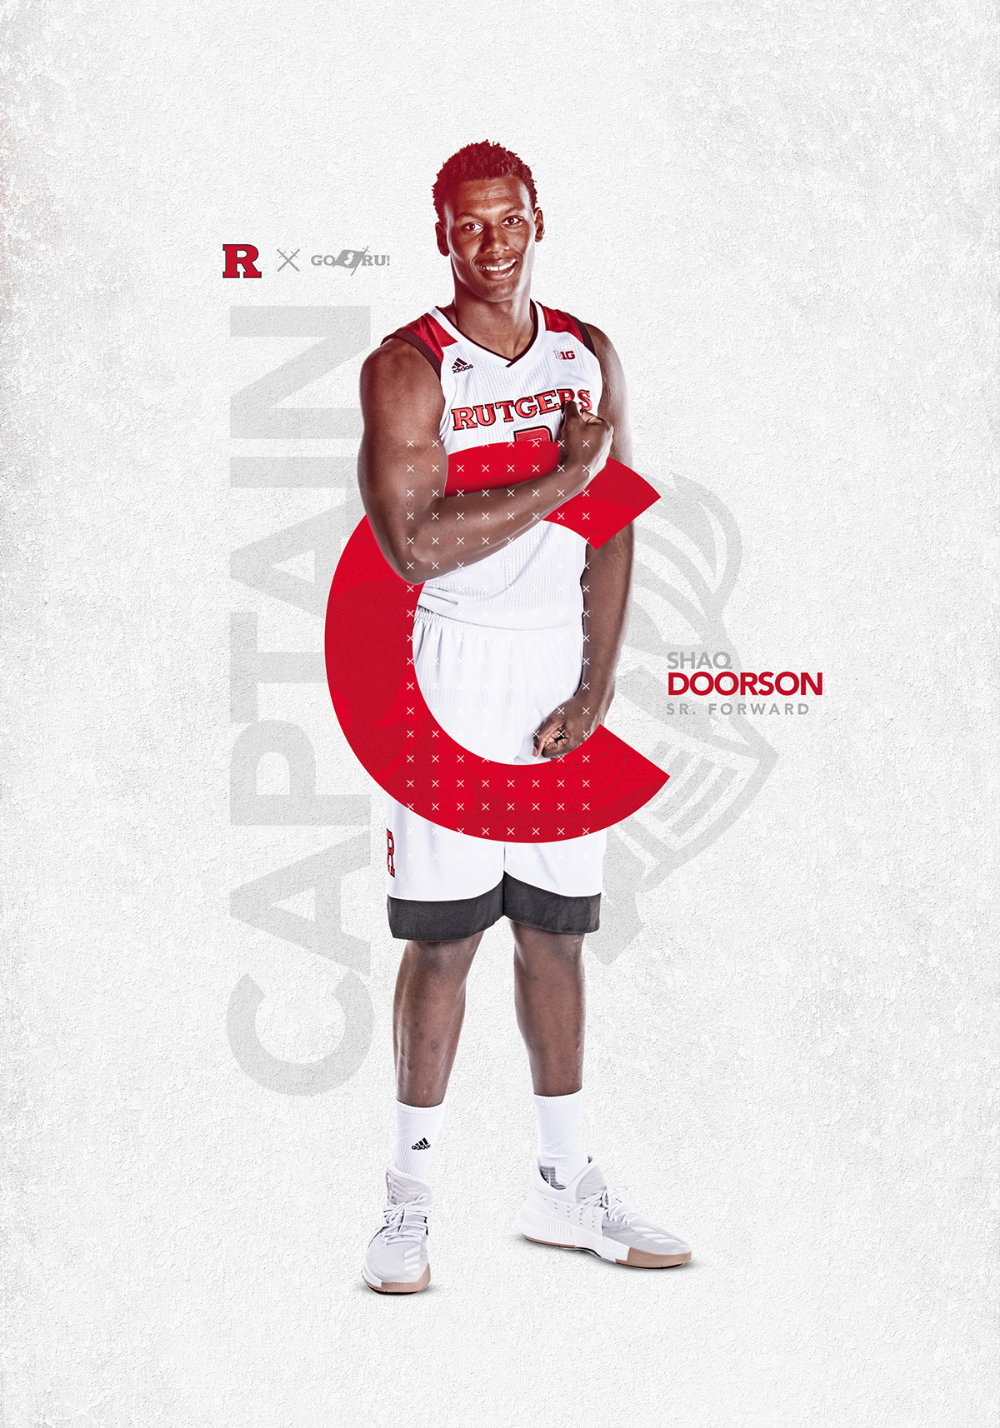 2018 Rutgers Athletic Brand Direction On Behance In 2020 Sports Design Inspiration Sports Design Athletic